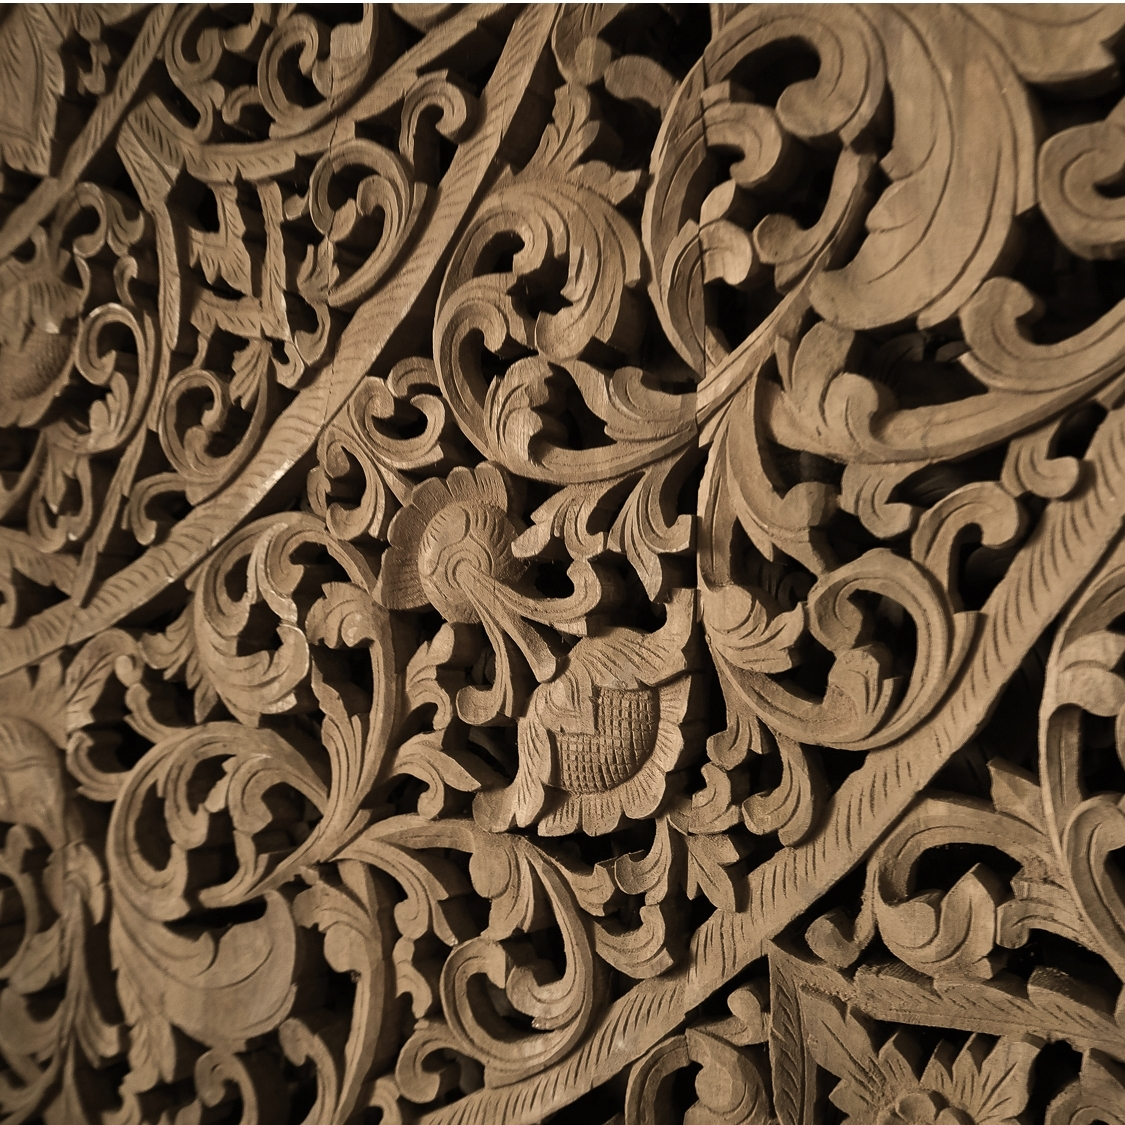 Wood Carved Wall Art Roselawnlutheran, Carved Wood Wall Art   Swinki Throughout Wood Carved Wall Art (Photo 7 of 20)